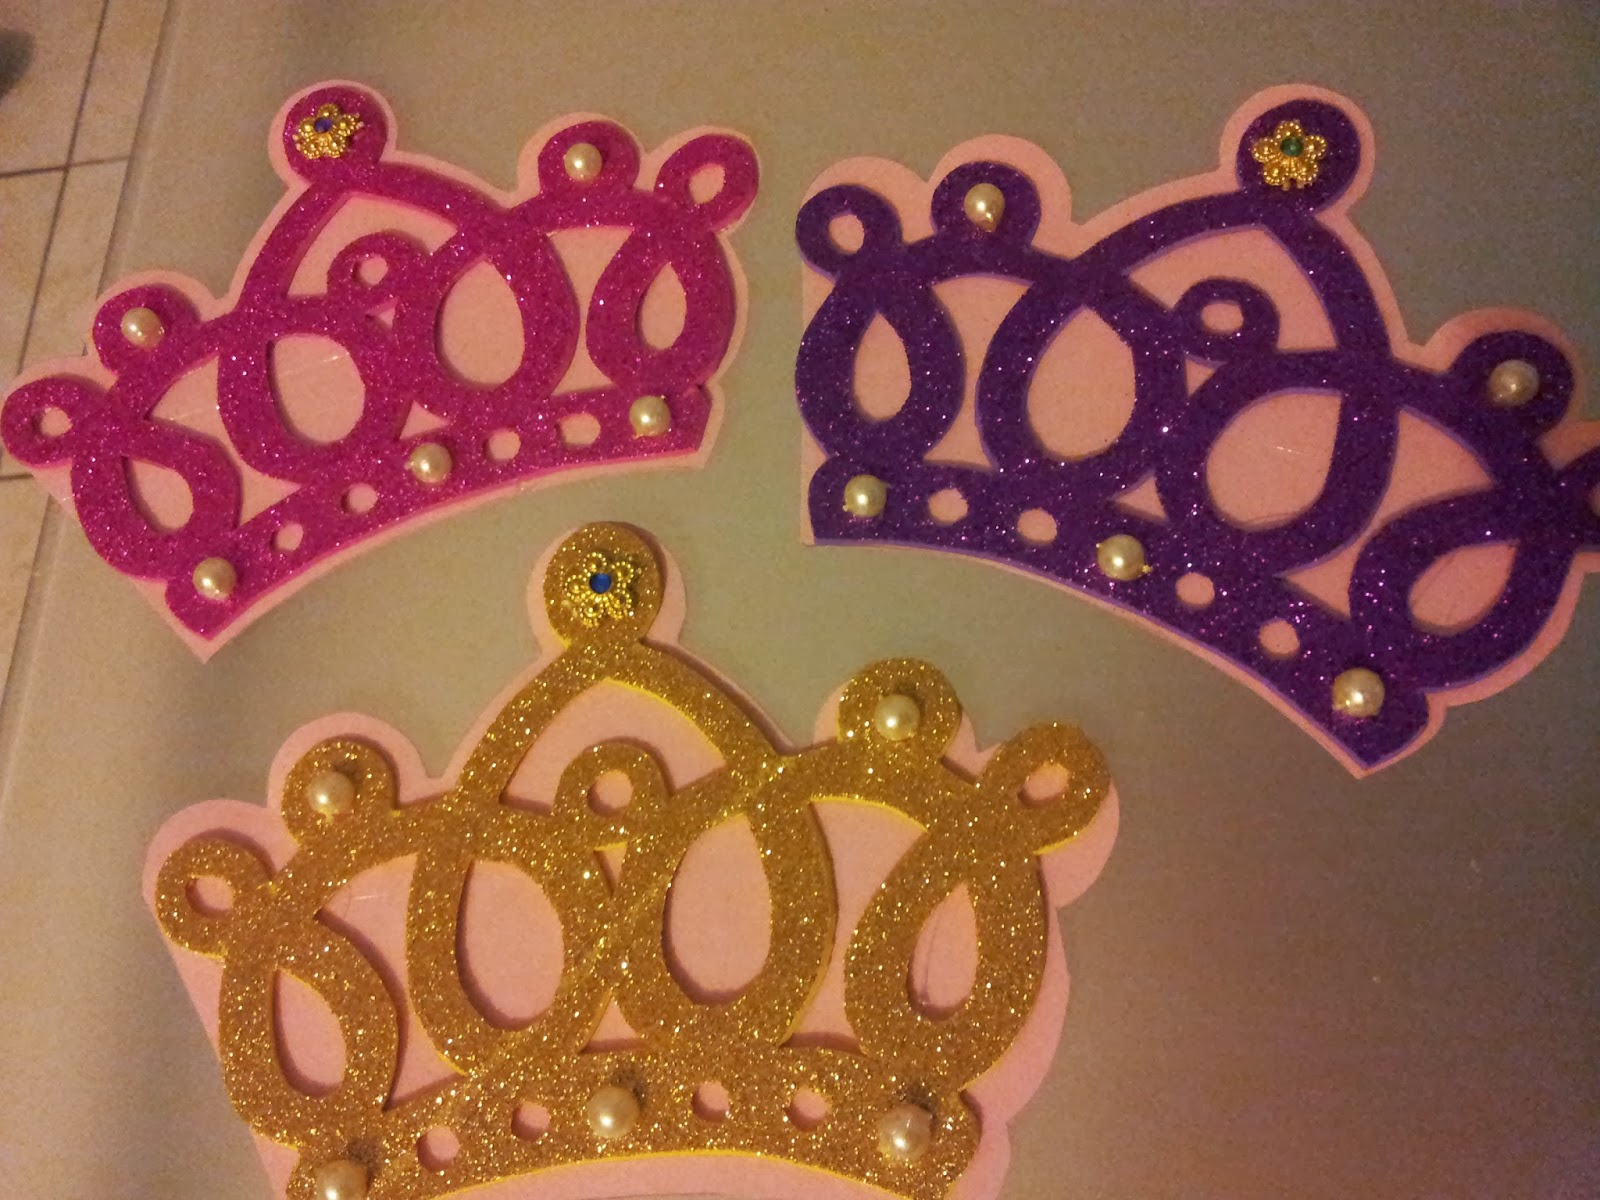 Princess Crown Invitation Template intended for dimensions 1600 X 1200